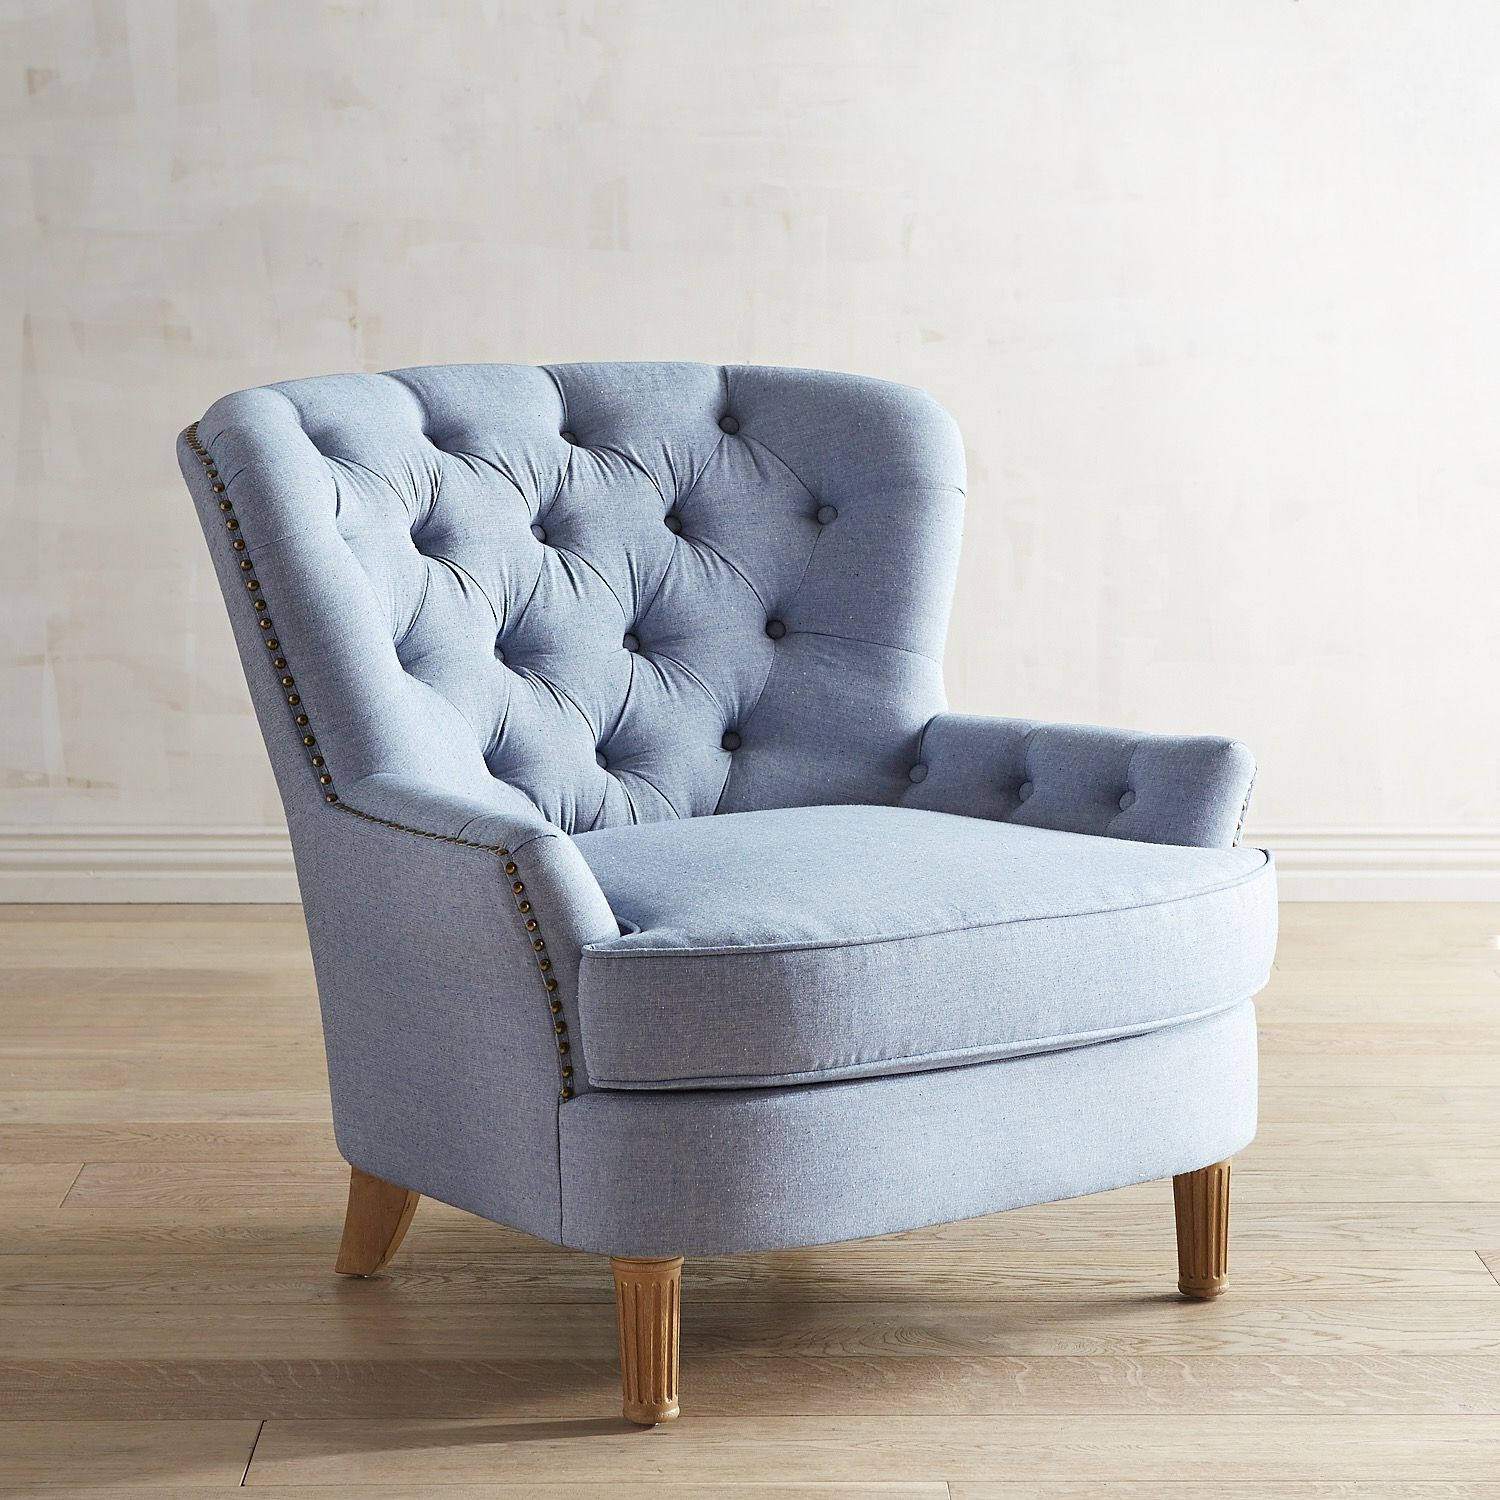 Delicieux Eliza Chambray Blue Chair